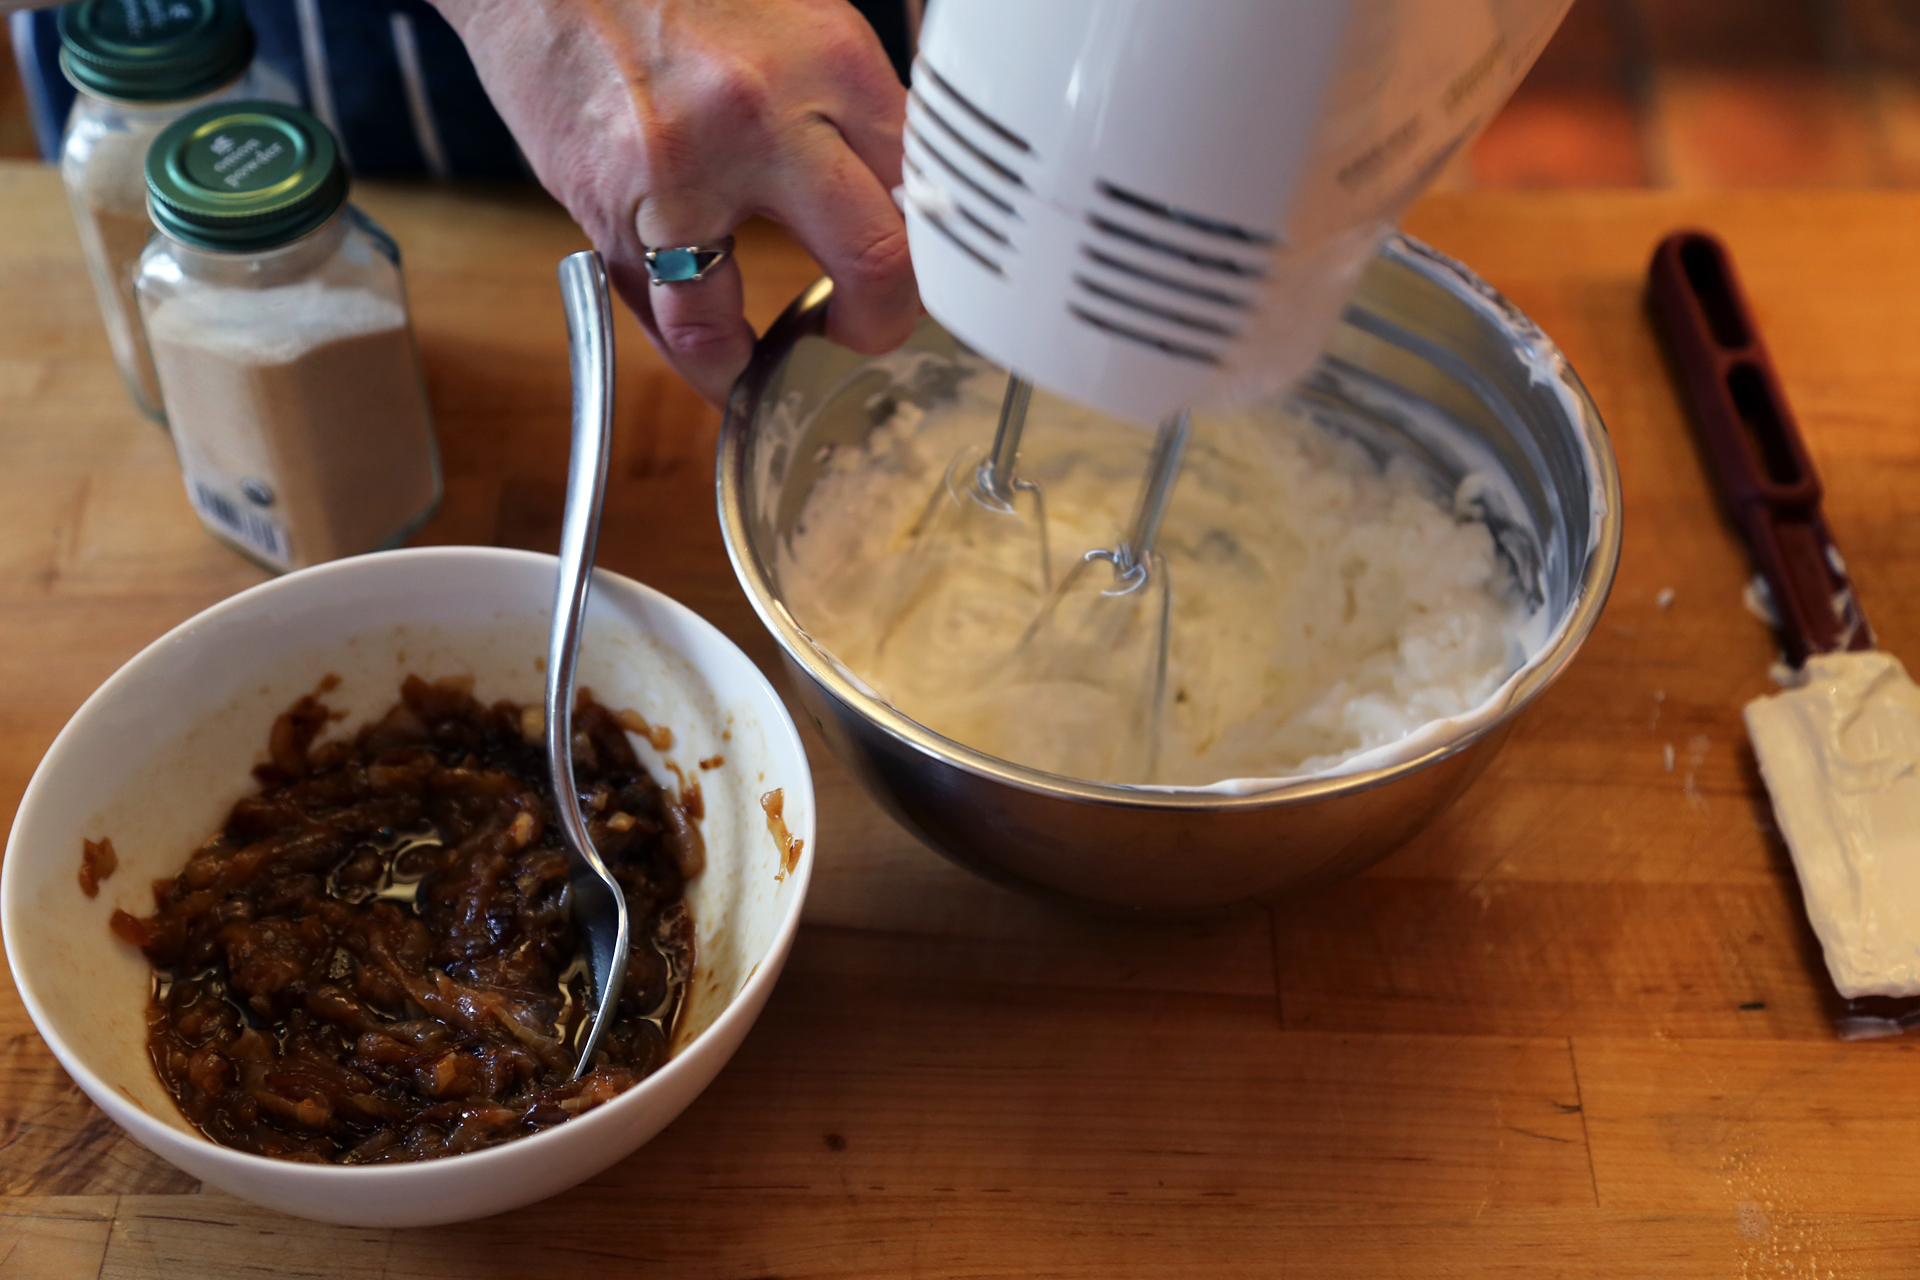 Add the sour cream and cream cheese to a mixing bowl and beat with an electric hand mixer or a wooden spoon until smooth and well combined.